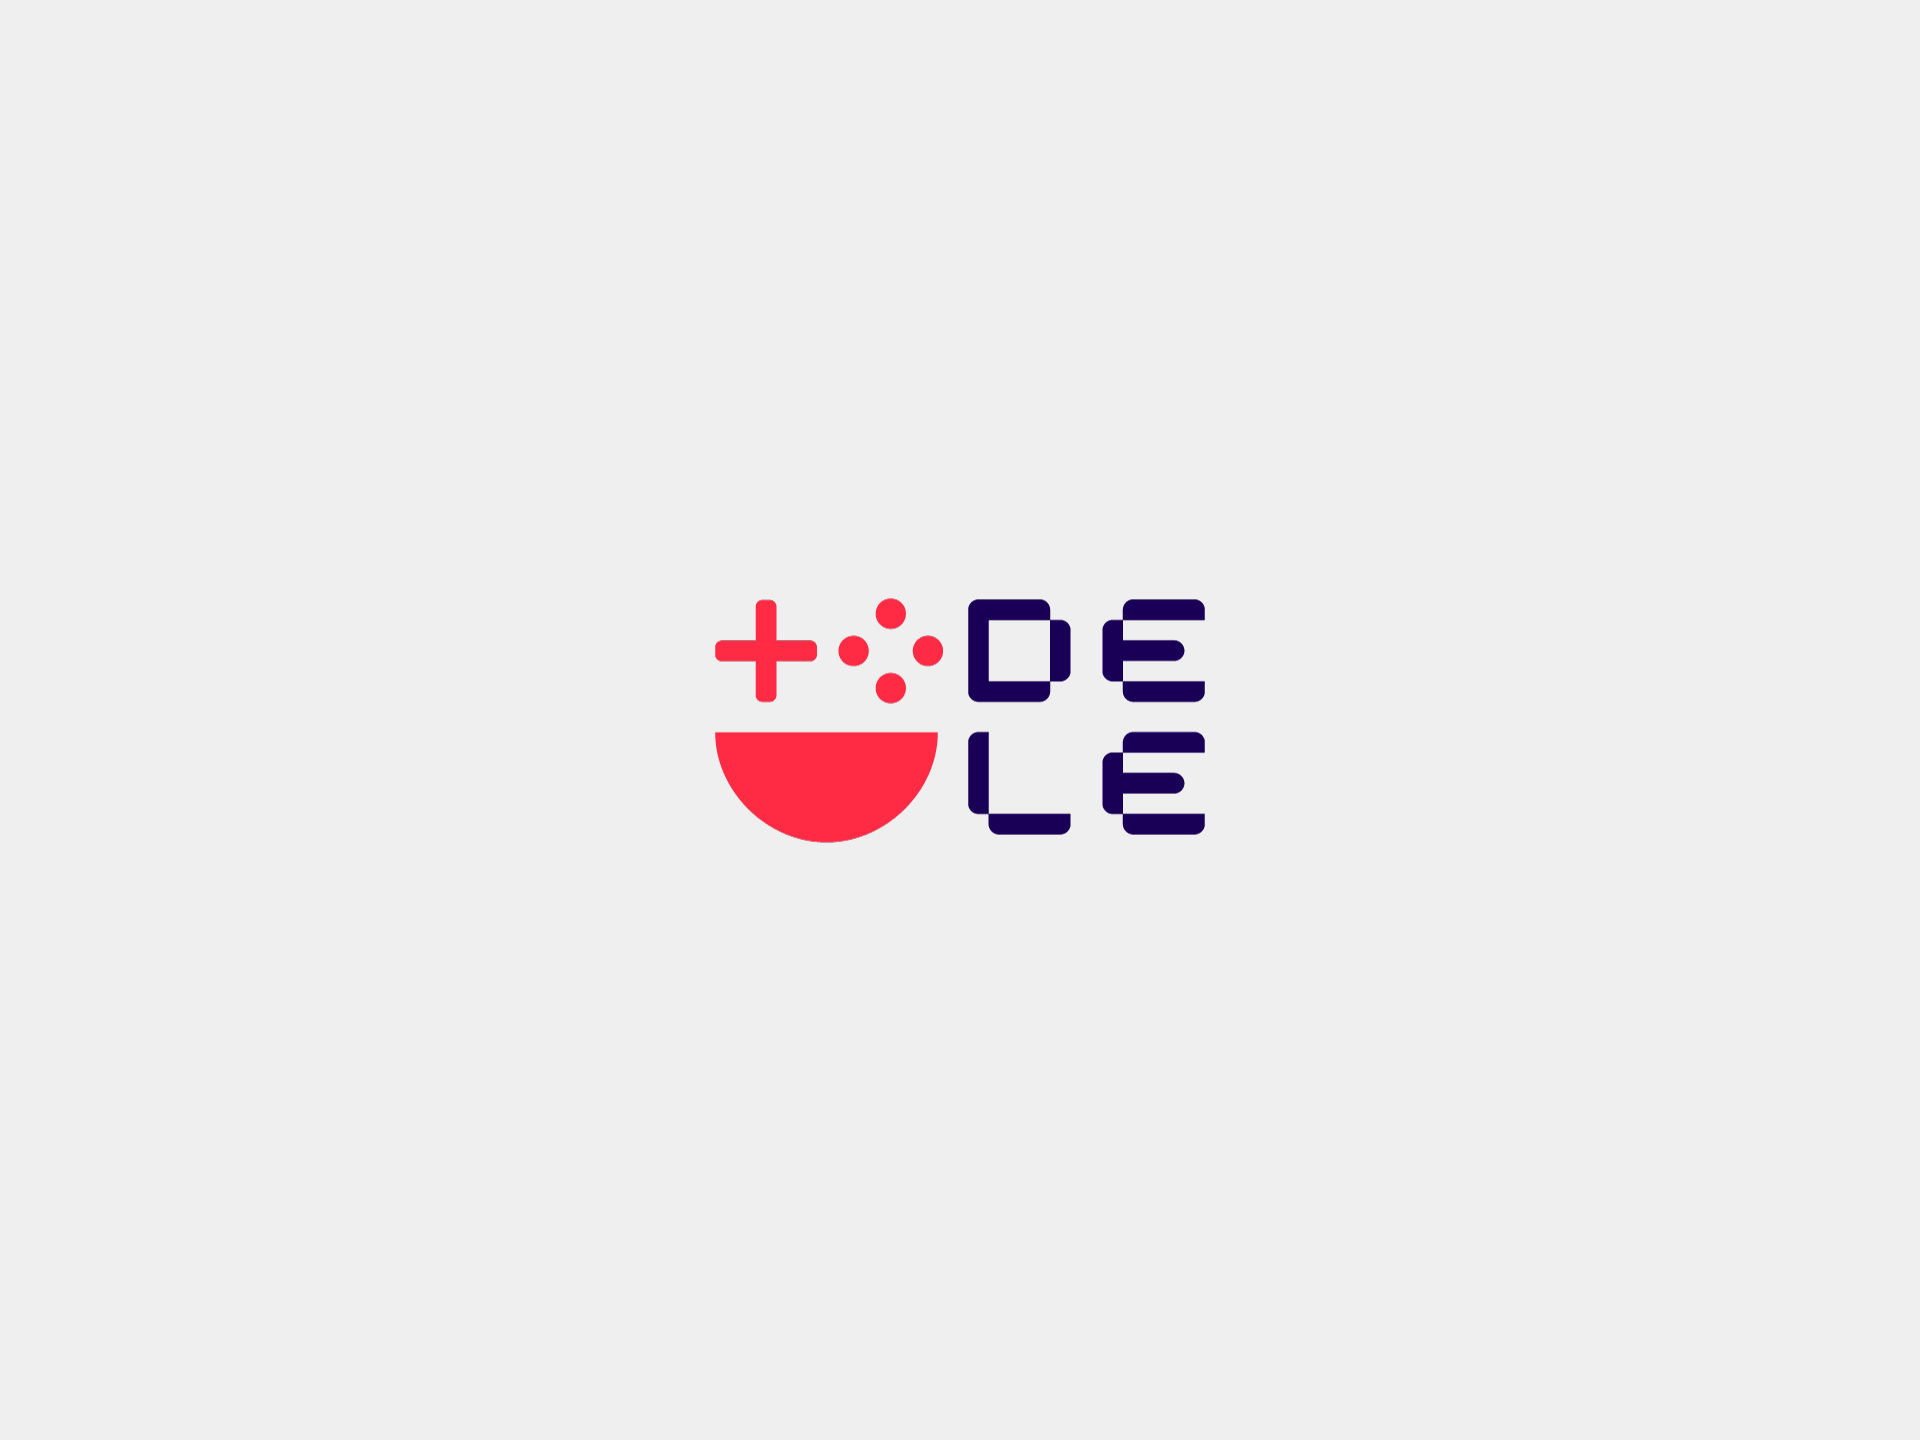 DELE - Gaming Accessory Retailer - Branding, Identity Design, Logo, Illustration, UI/UX design and print